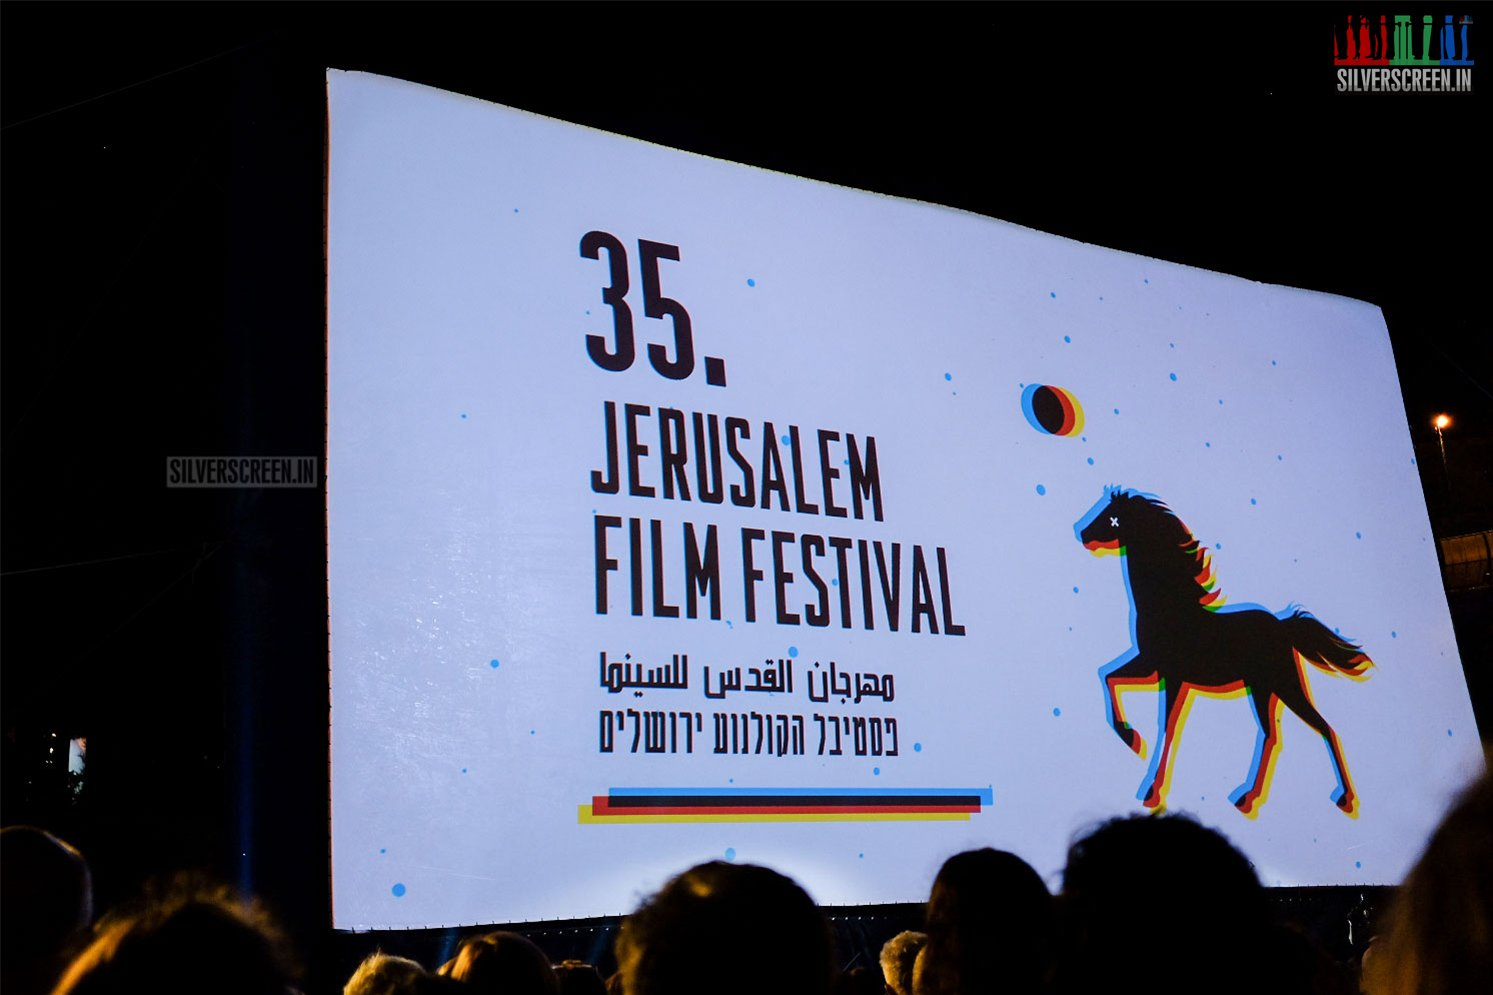 The 35th Jerusalem Film Festival Explored Religious Orthodoxy In